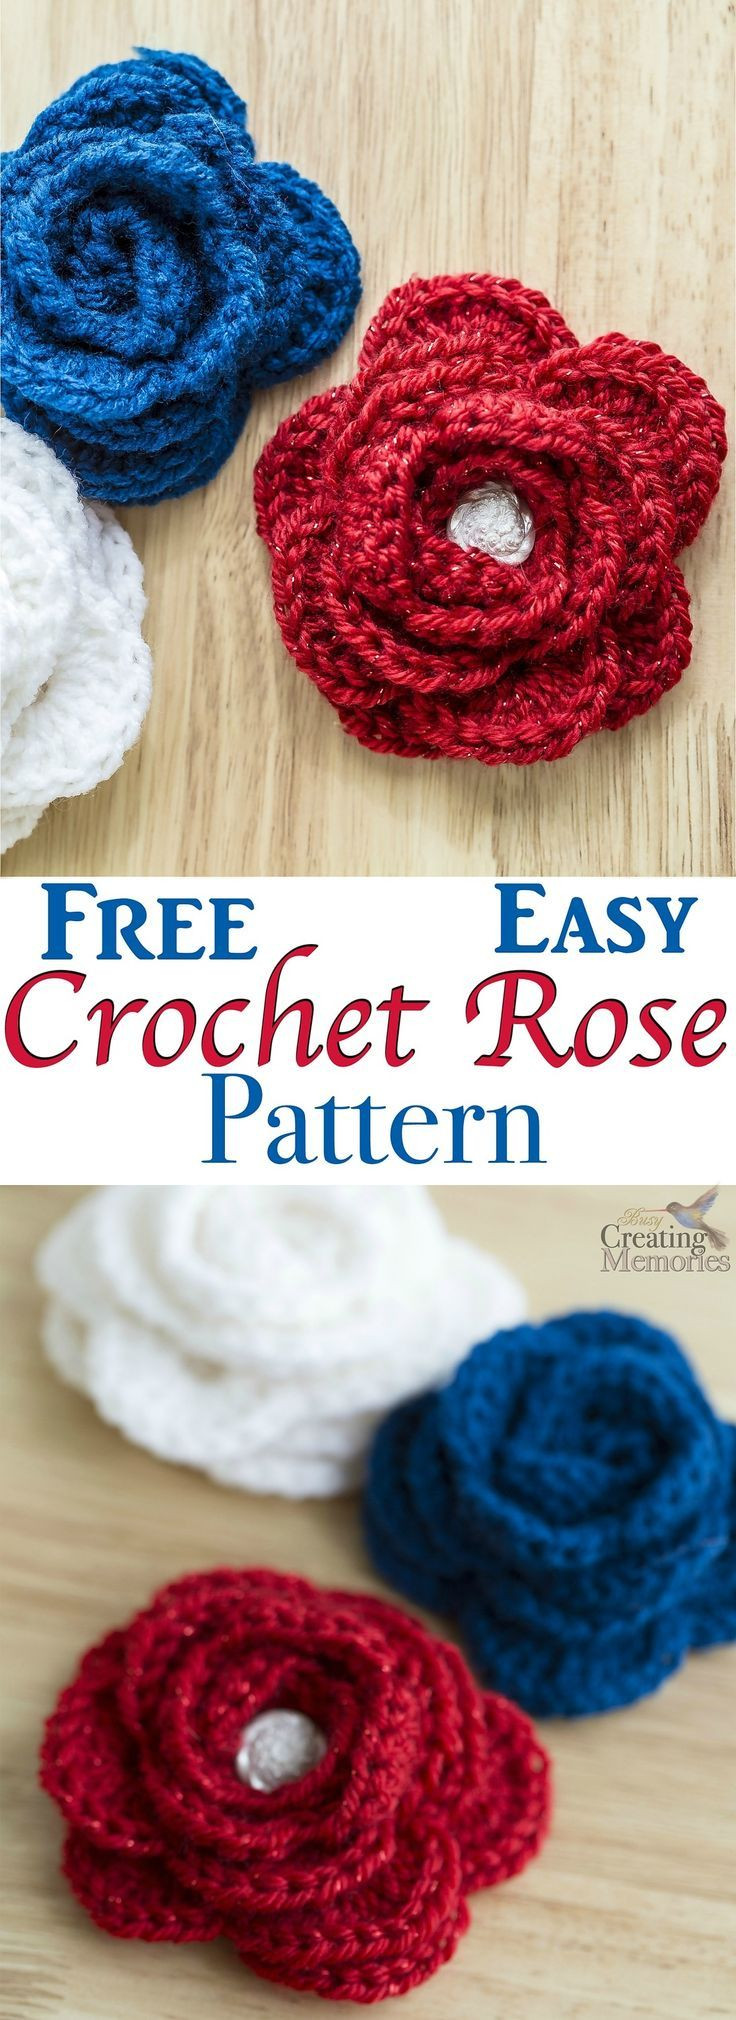 Free Crochet Rose Pattern Beautiful Free Easy Crochet Rose Pattern Of Attractive 49 Pics Free Crochet Rose Pattern